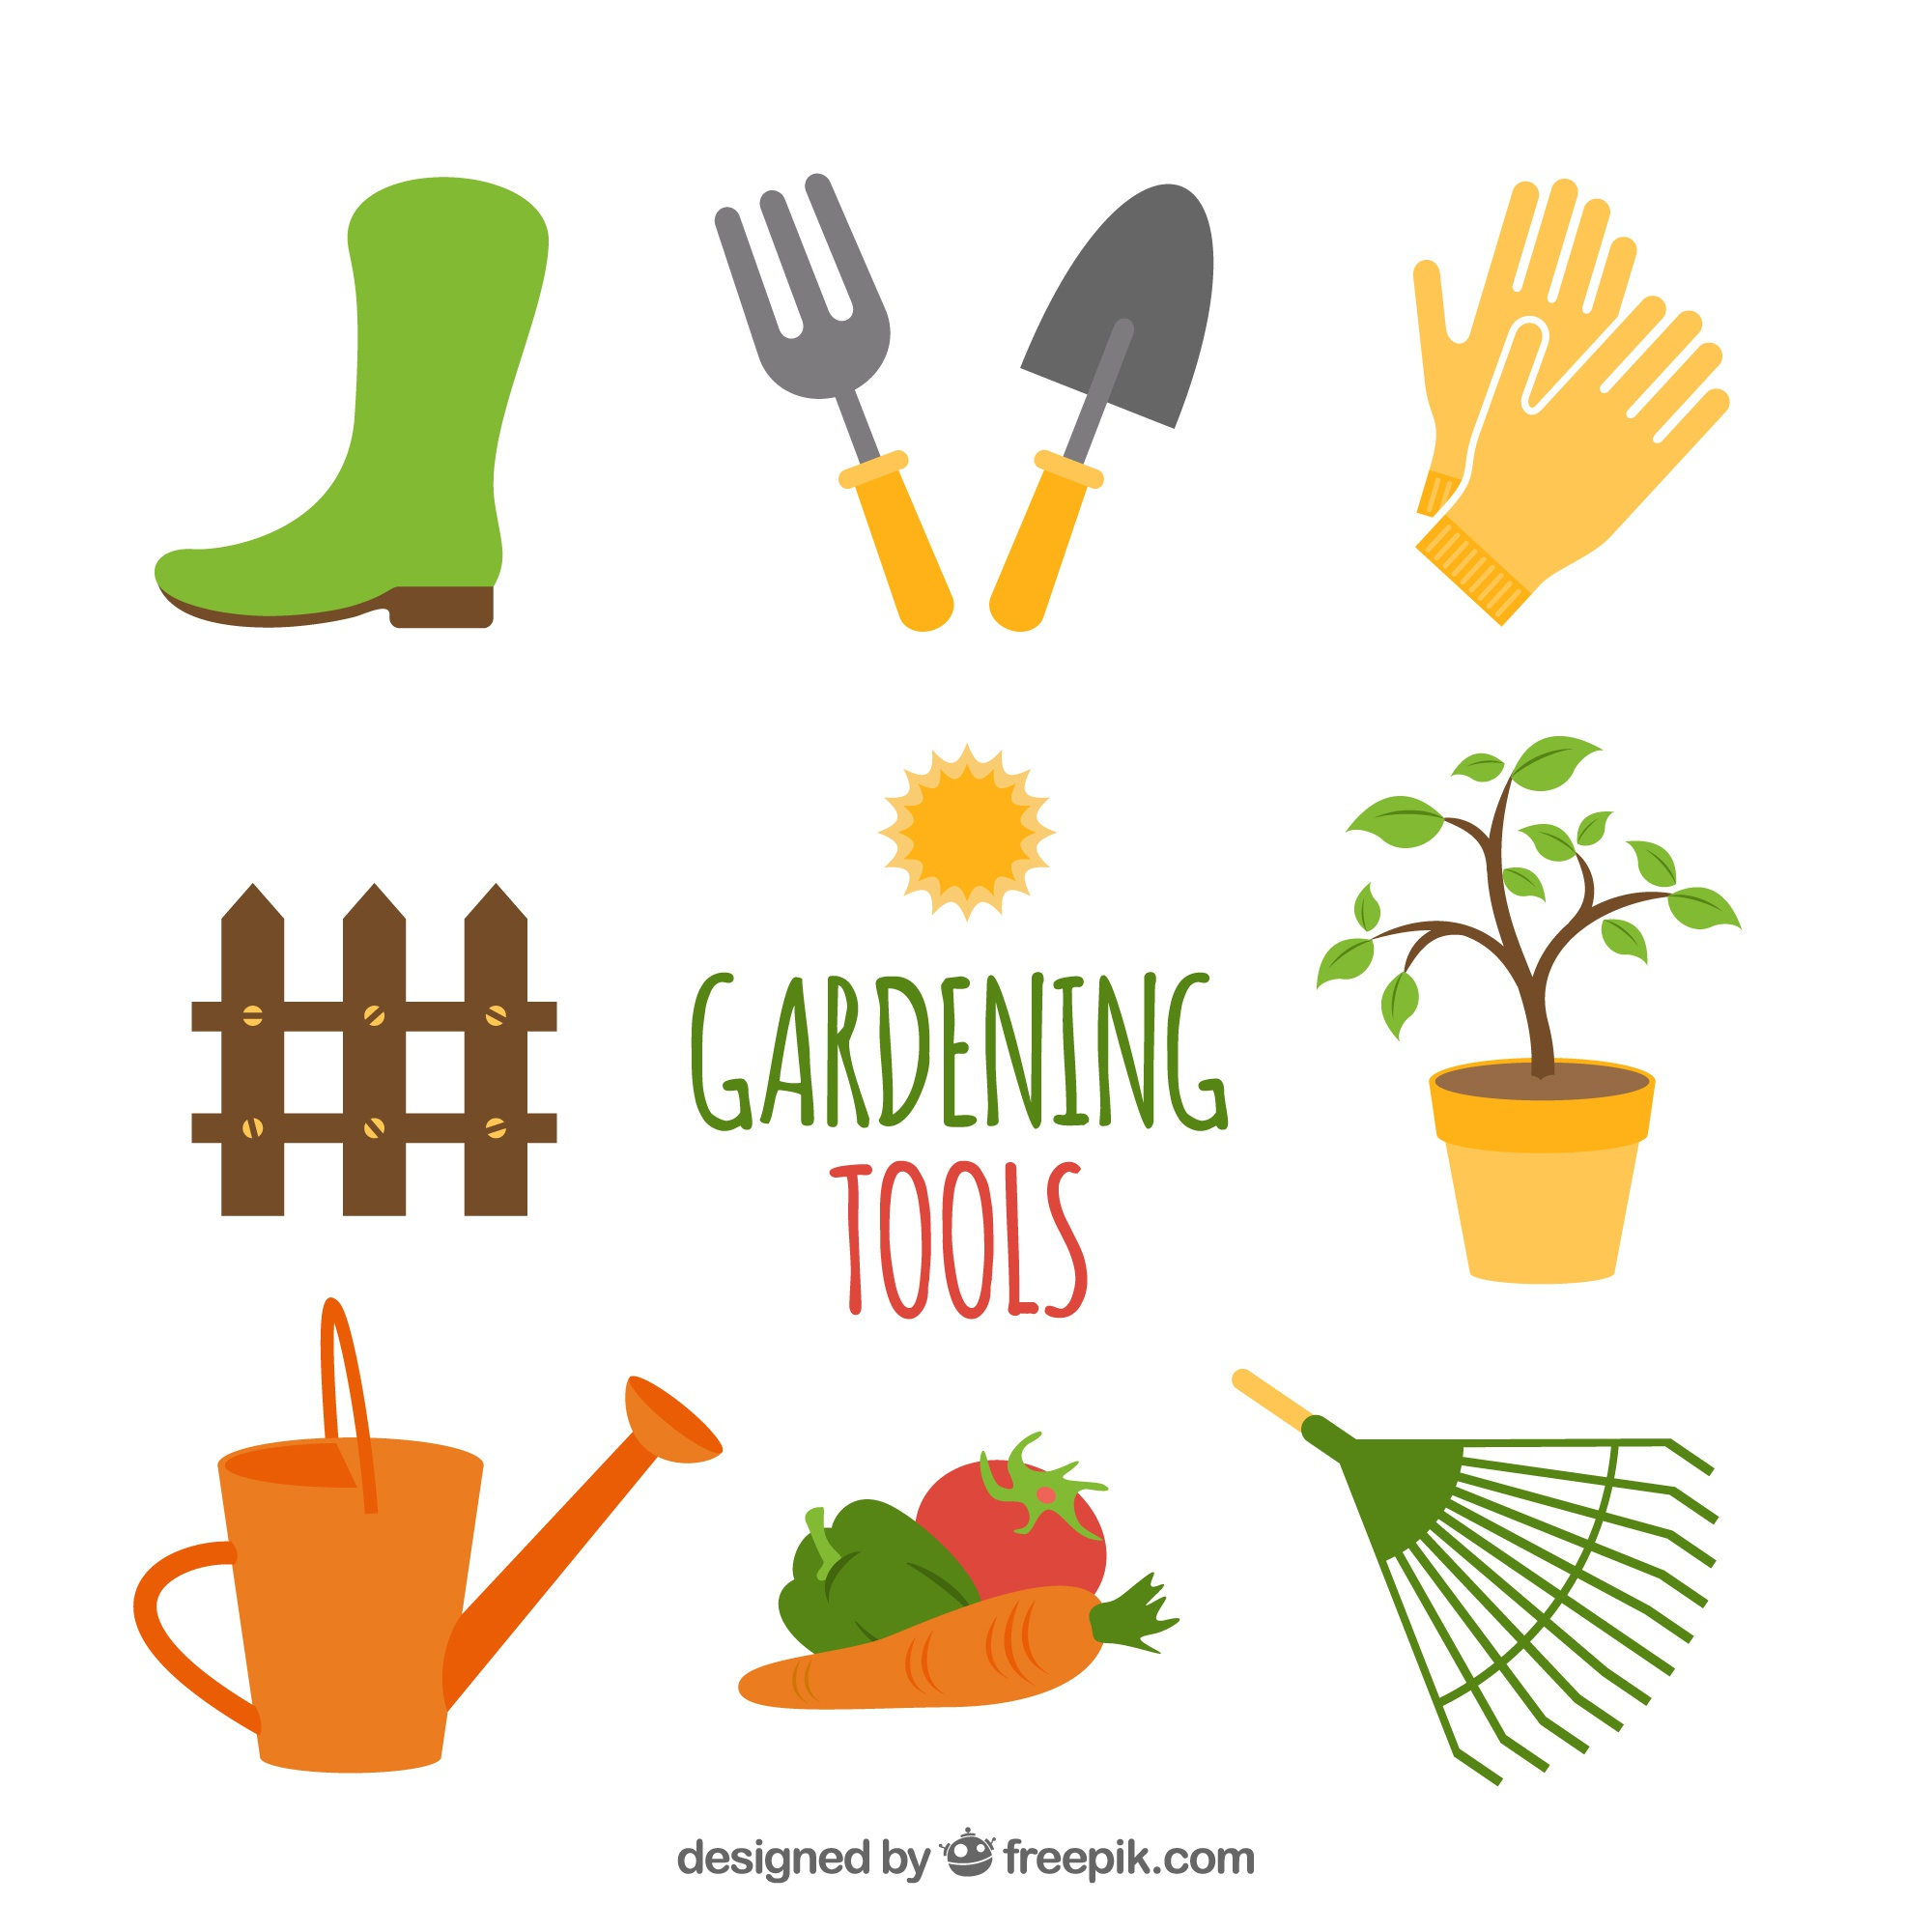 Illustrations vectors 16 600 free files in ai eps format for Gardening tools dictionary